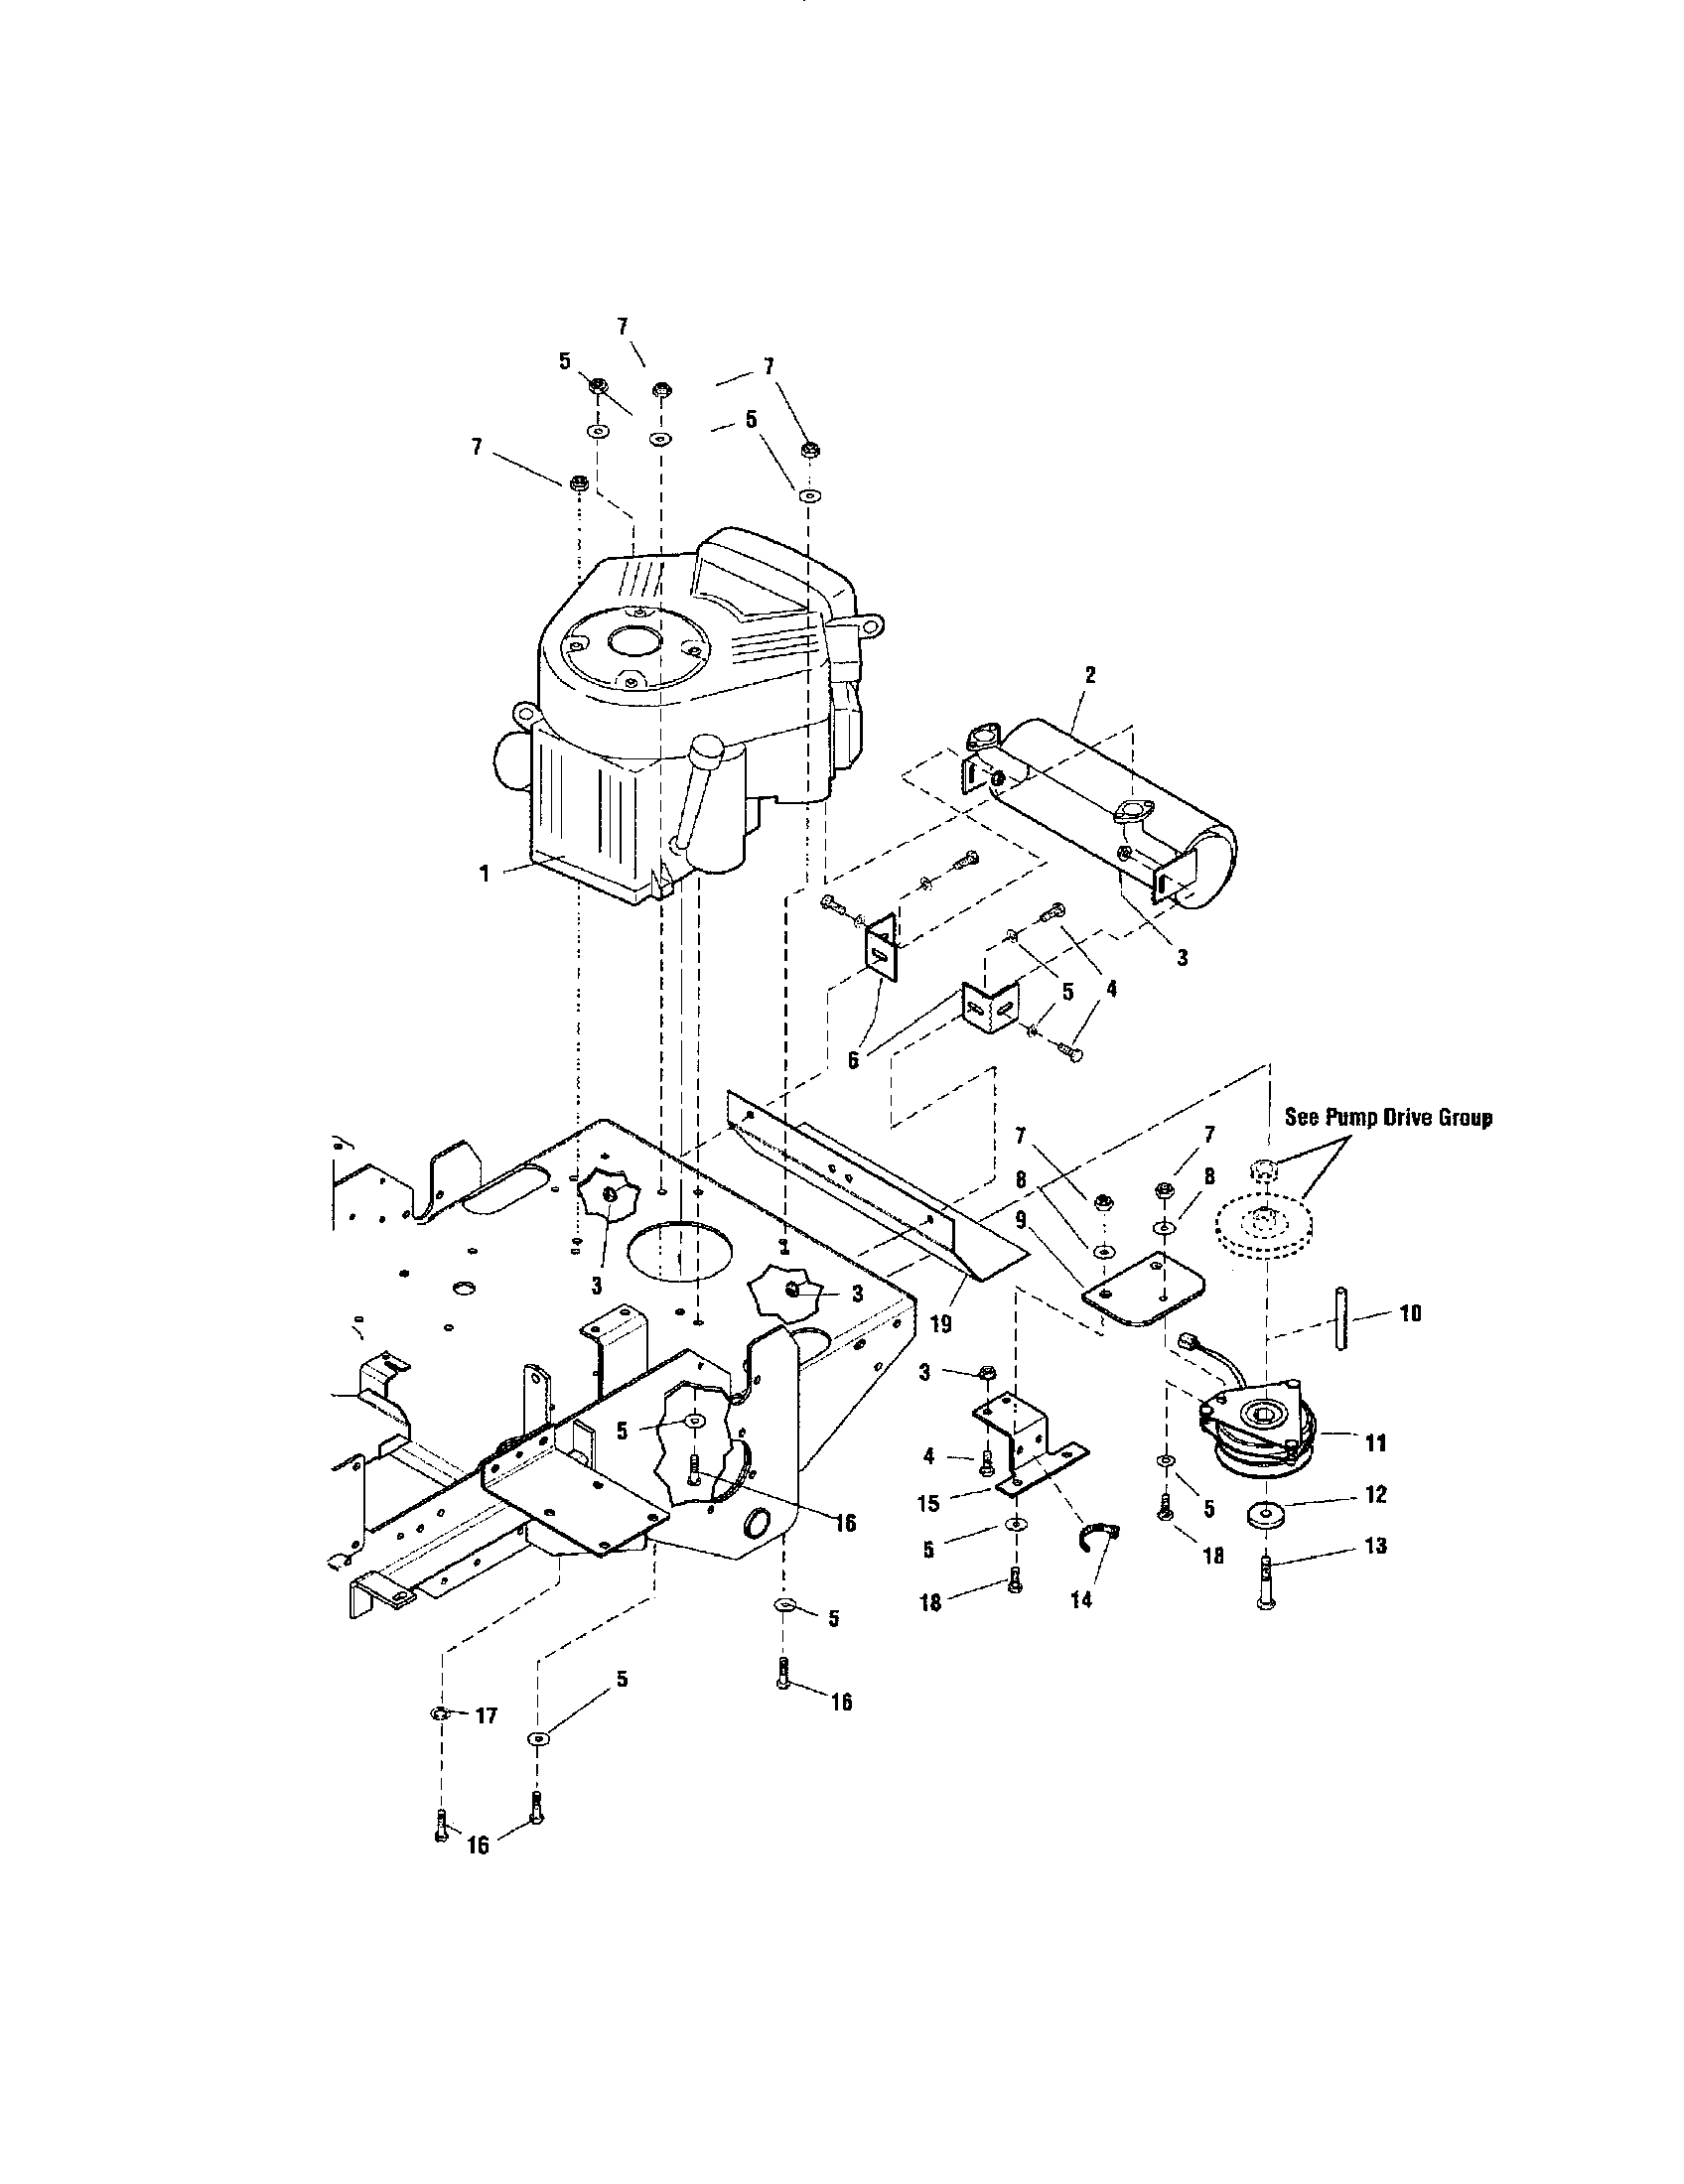 ENGINE/PTO-BRIGGS & STRATTON Diagram & Parts List for